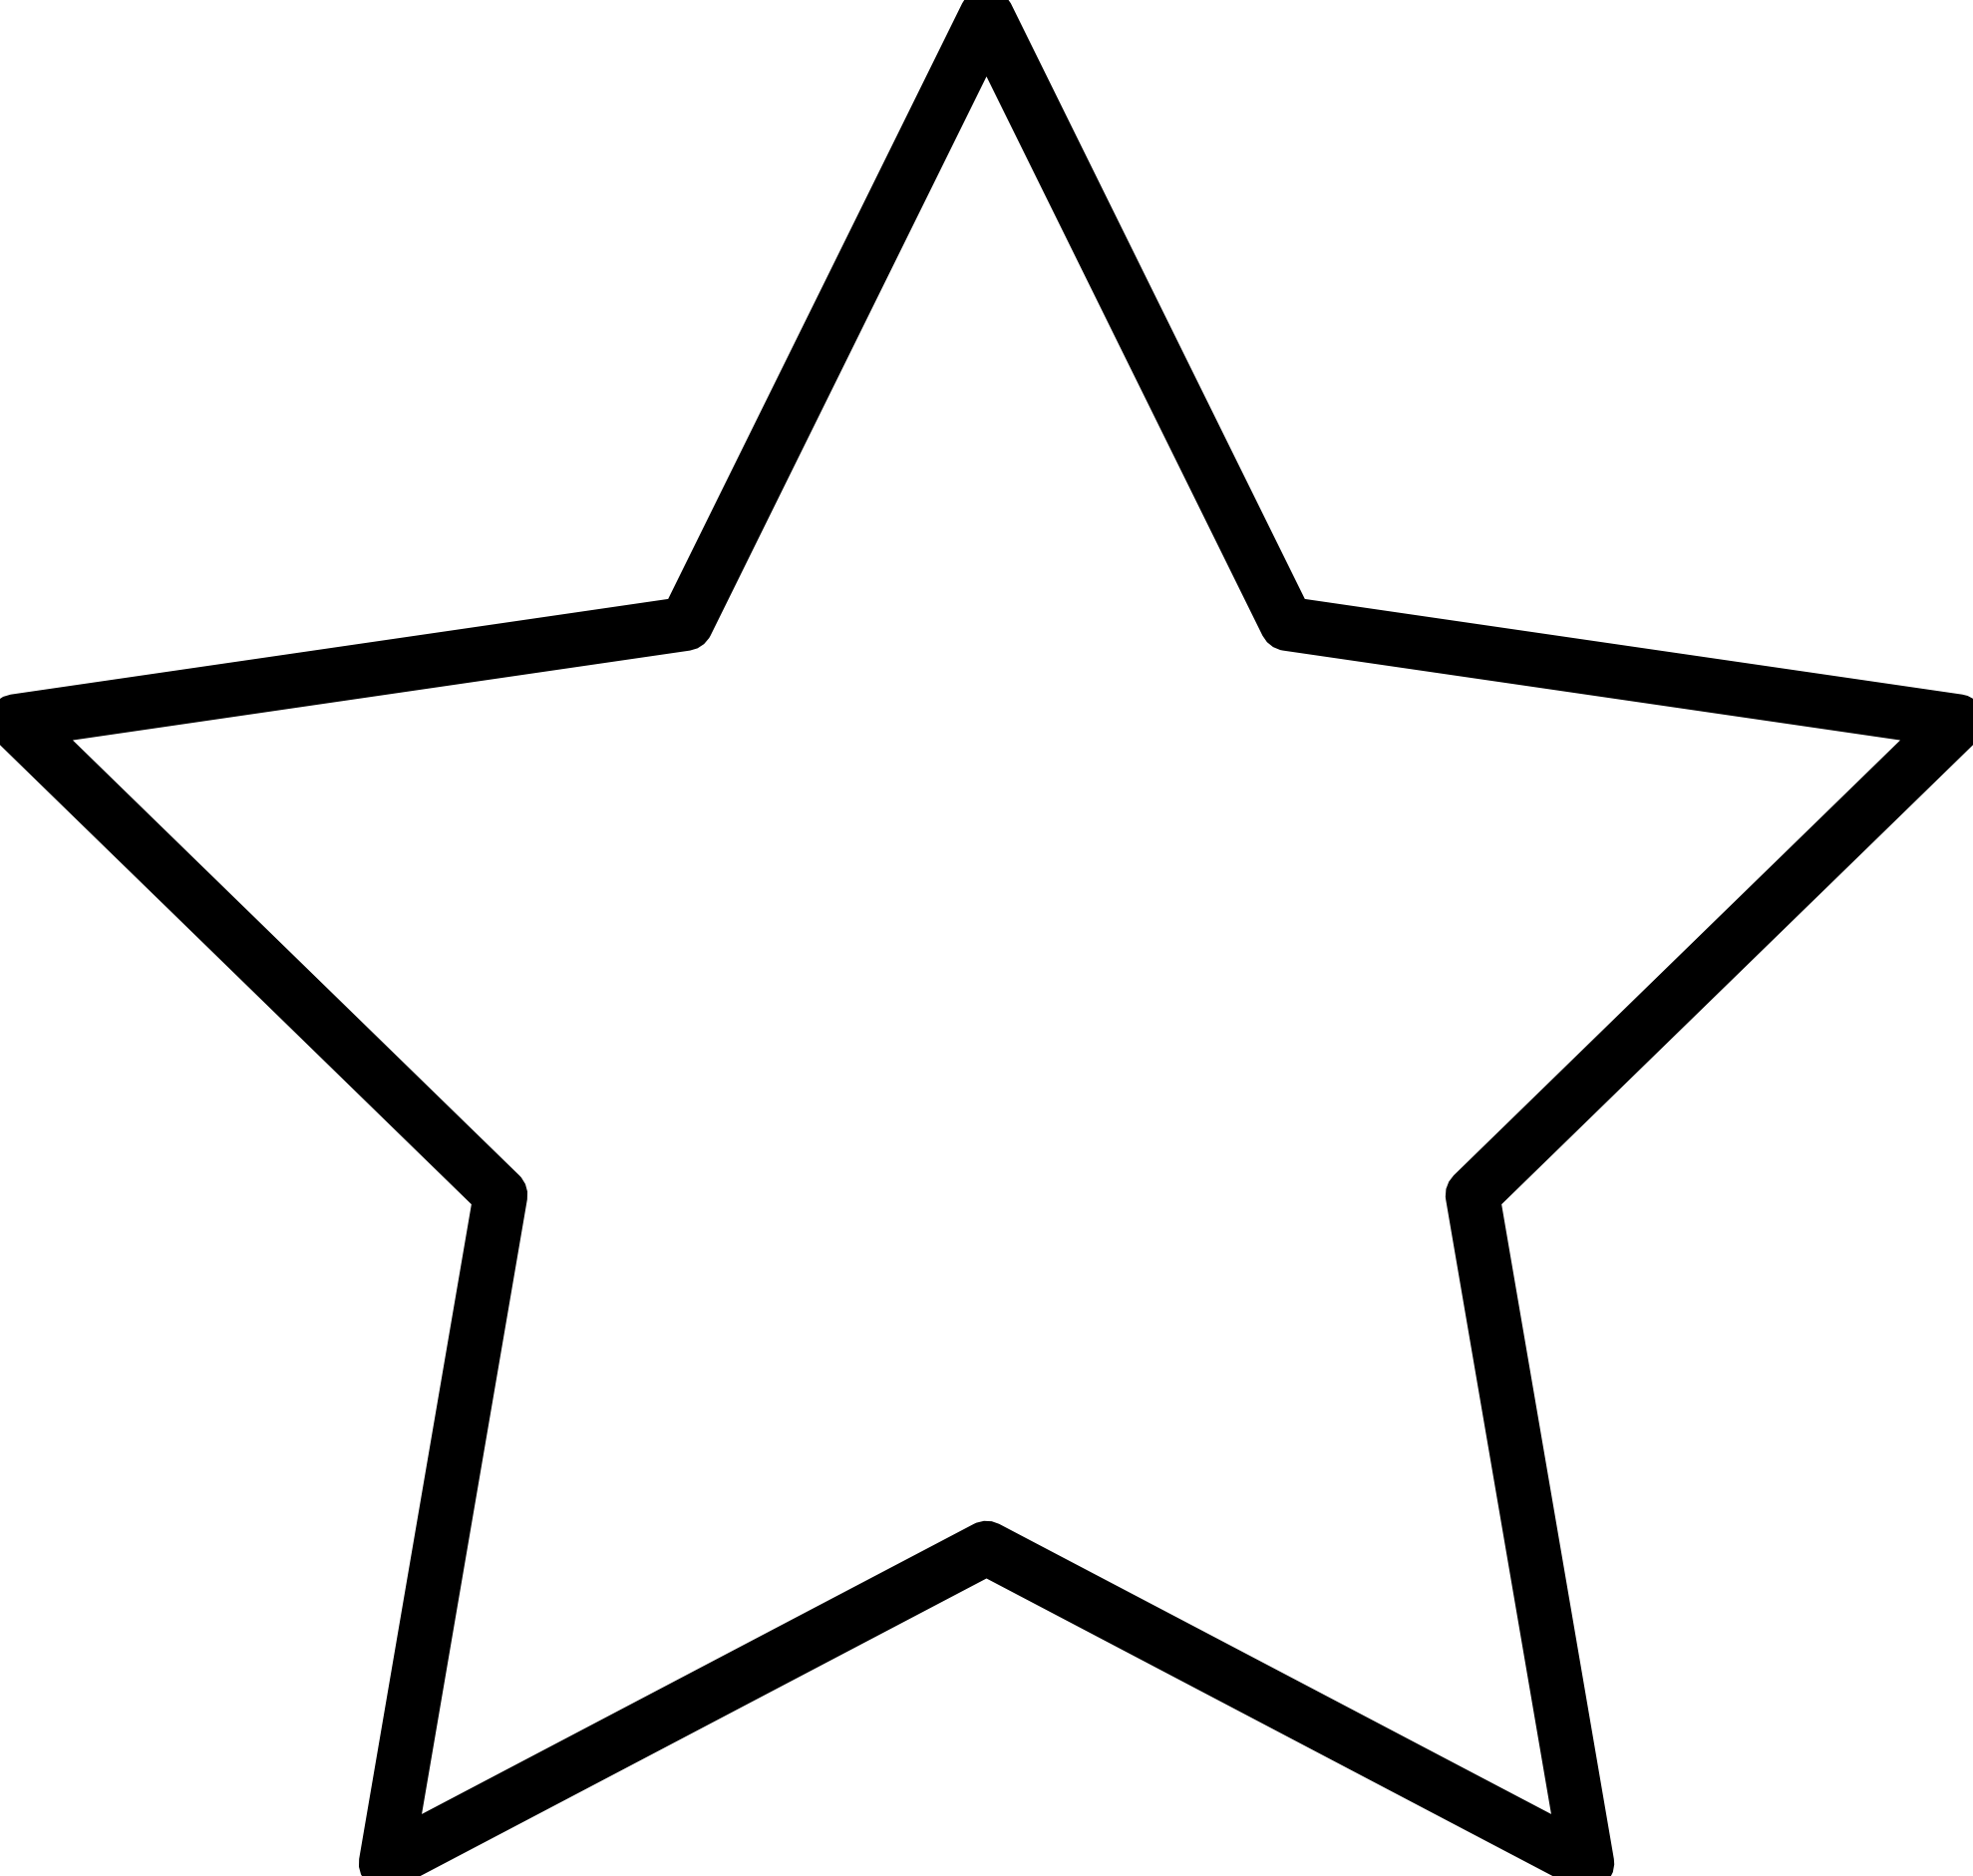 Dallas cowboy star clipart clip freeuse stock Star Clipart Black And White - Free Clip Art - Clipart Bay clip freeuse stock